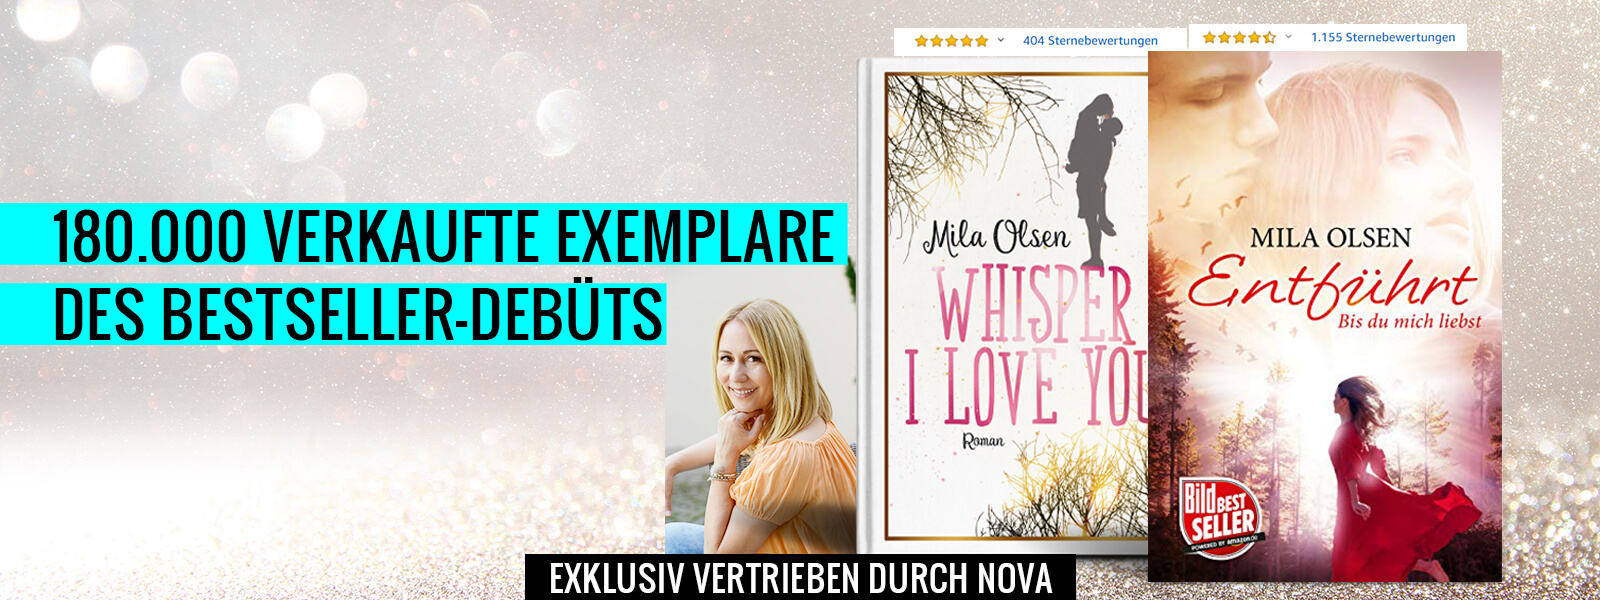 "Bestseller-Autorin Mila Olsen mit ""Whisper I love you"""